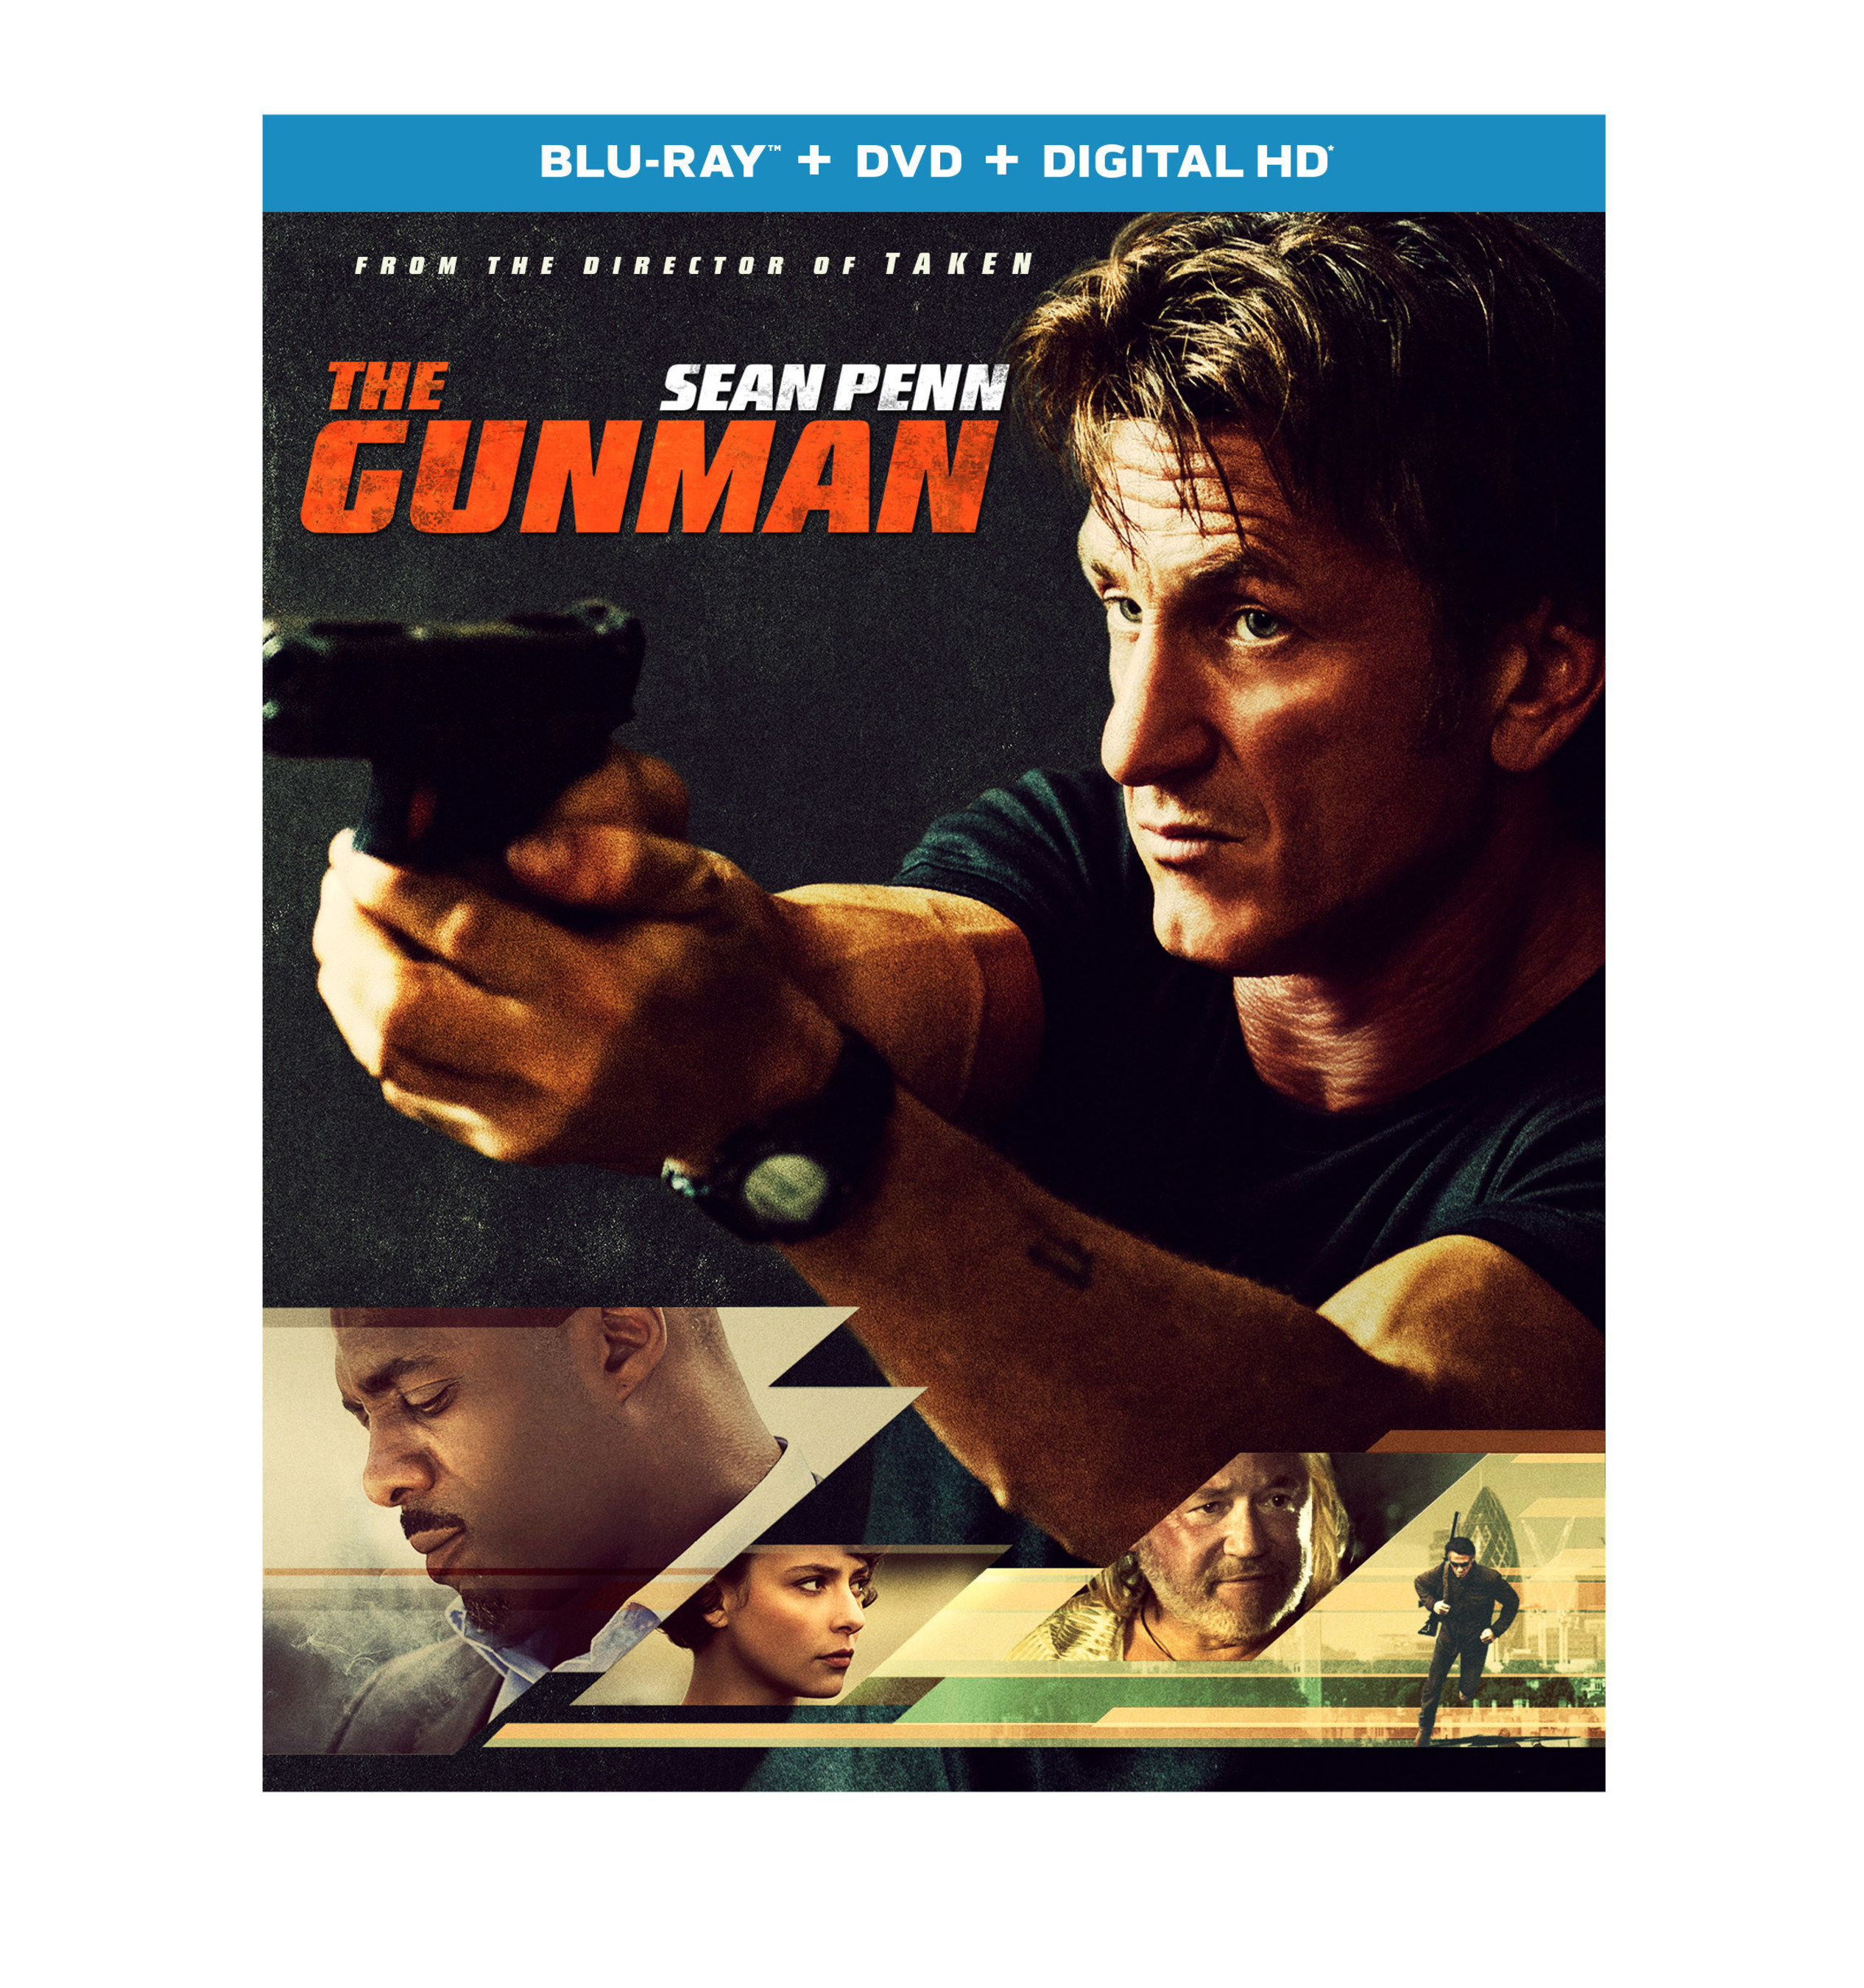 THE GUNMAN IS AVAILABLE ON DIGITAL HD JUNE 16TH AND ON BLU-RAY & DVD JUNE 30TH FROM UNIVERSAL PICTURES HOME ENTERTAINMENT.